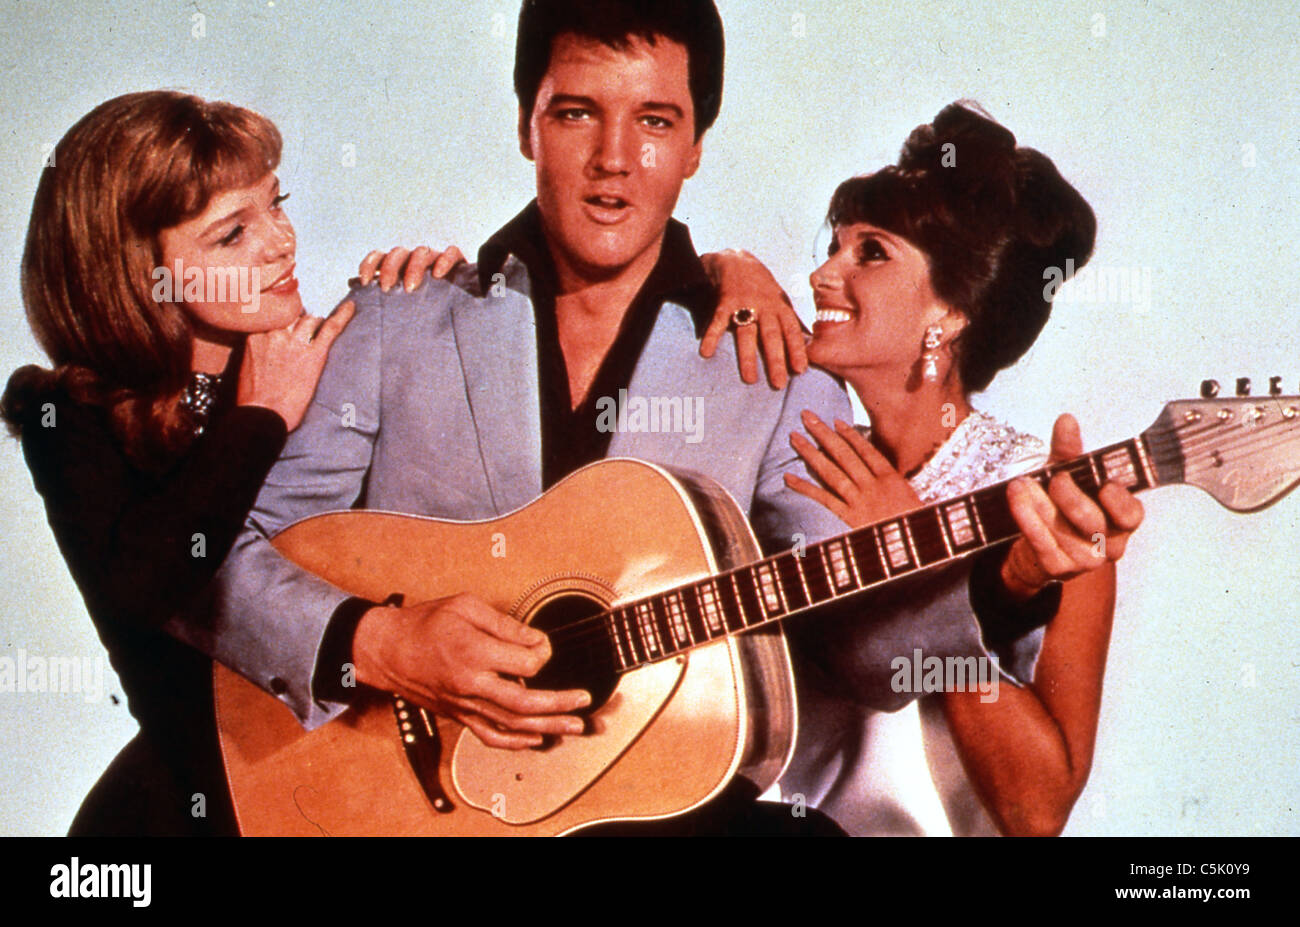 Double trouble (1967) Elvis priestley, yvonne romain, Annette norman taurog jour (dir) 003 collection moviestore Photo Stock